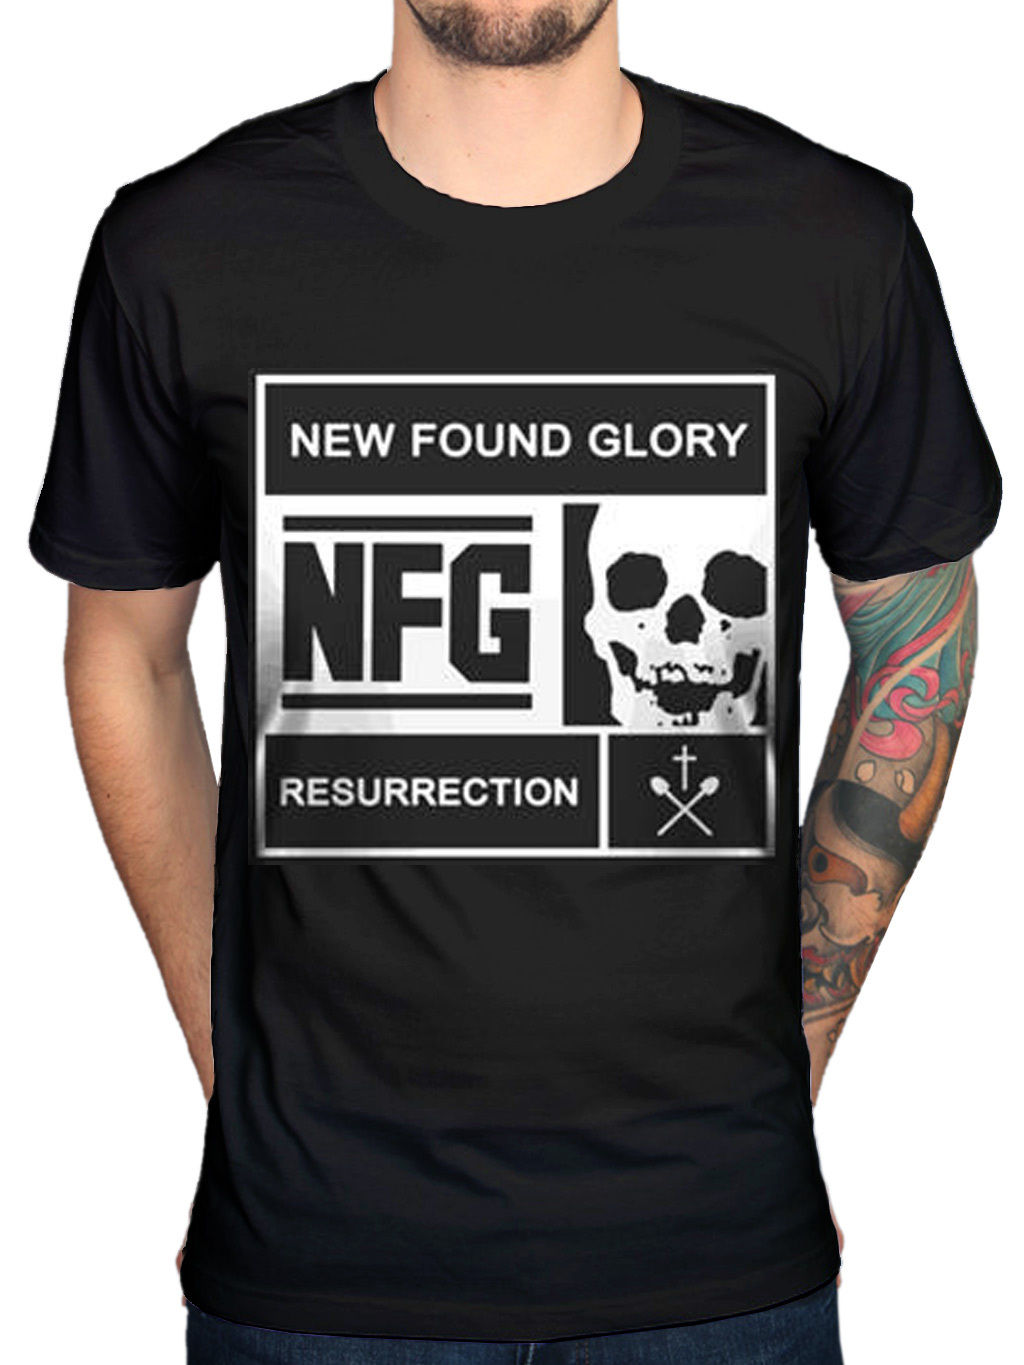 New Found Glory Blocked Resurrection T-Shirt Pop Punk Band Merchandise 2018 New Men T-Shirt top tee